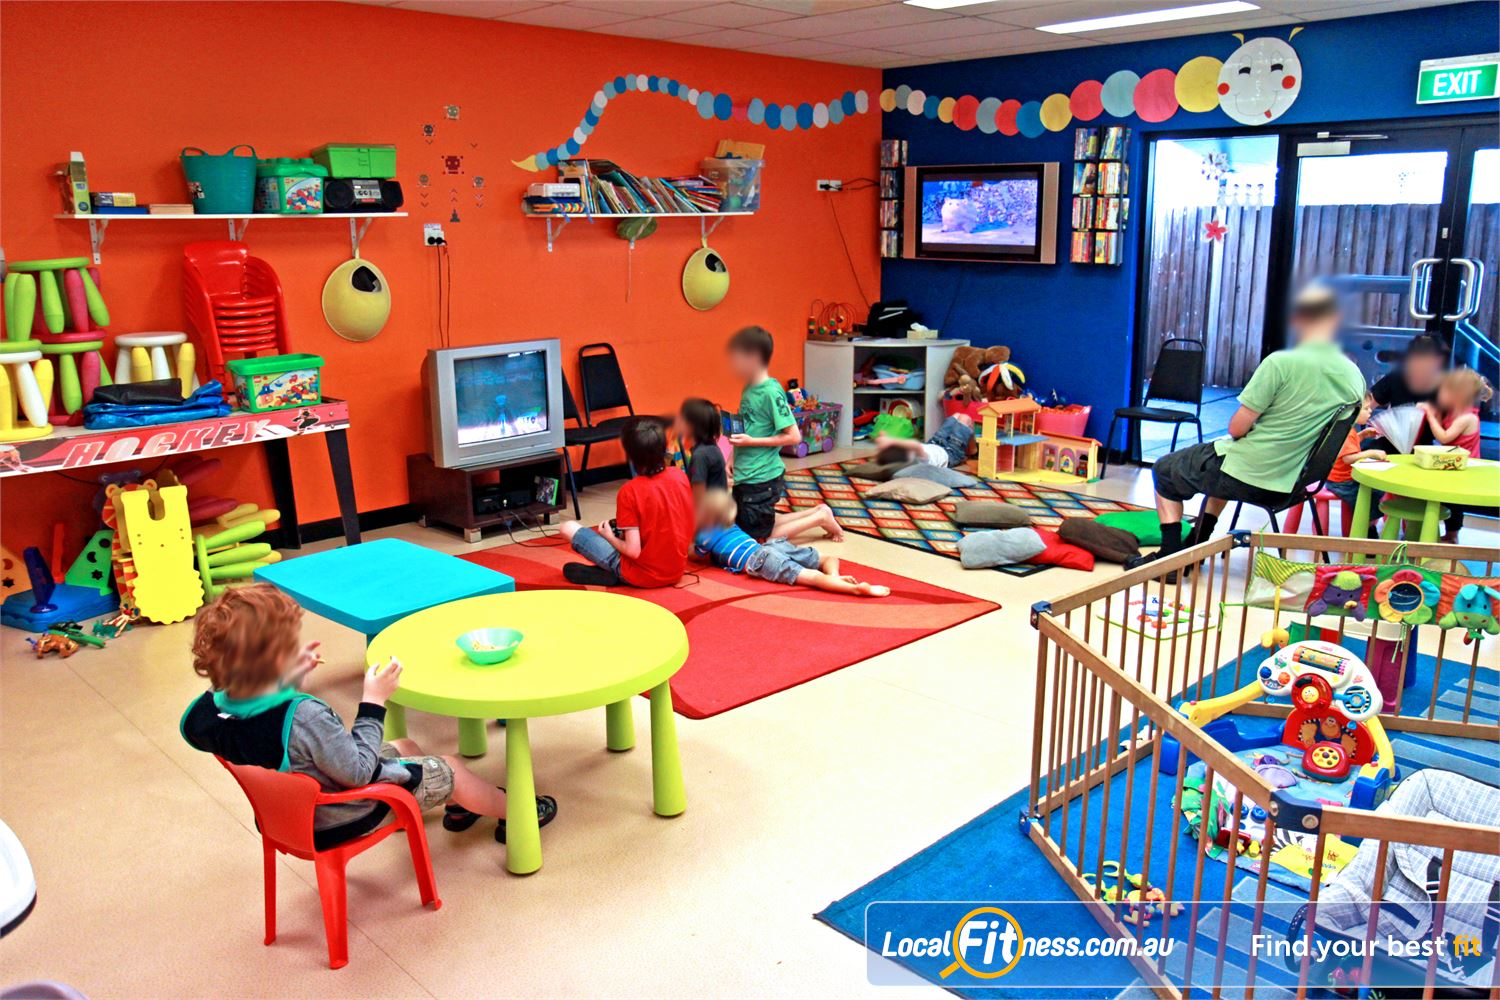 Goodlife Health Clubs Holland Park Goodlife Holland Park provides on-site child minding services.